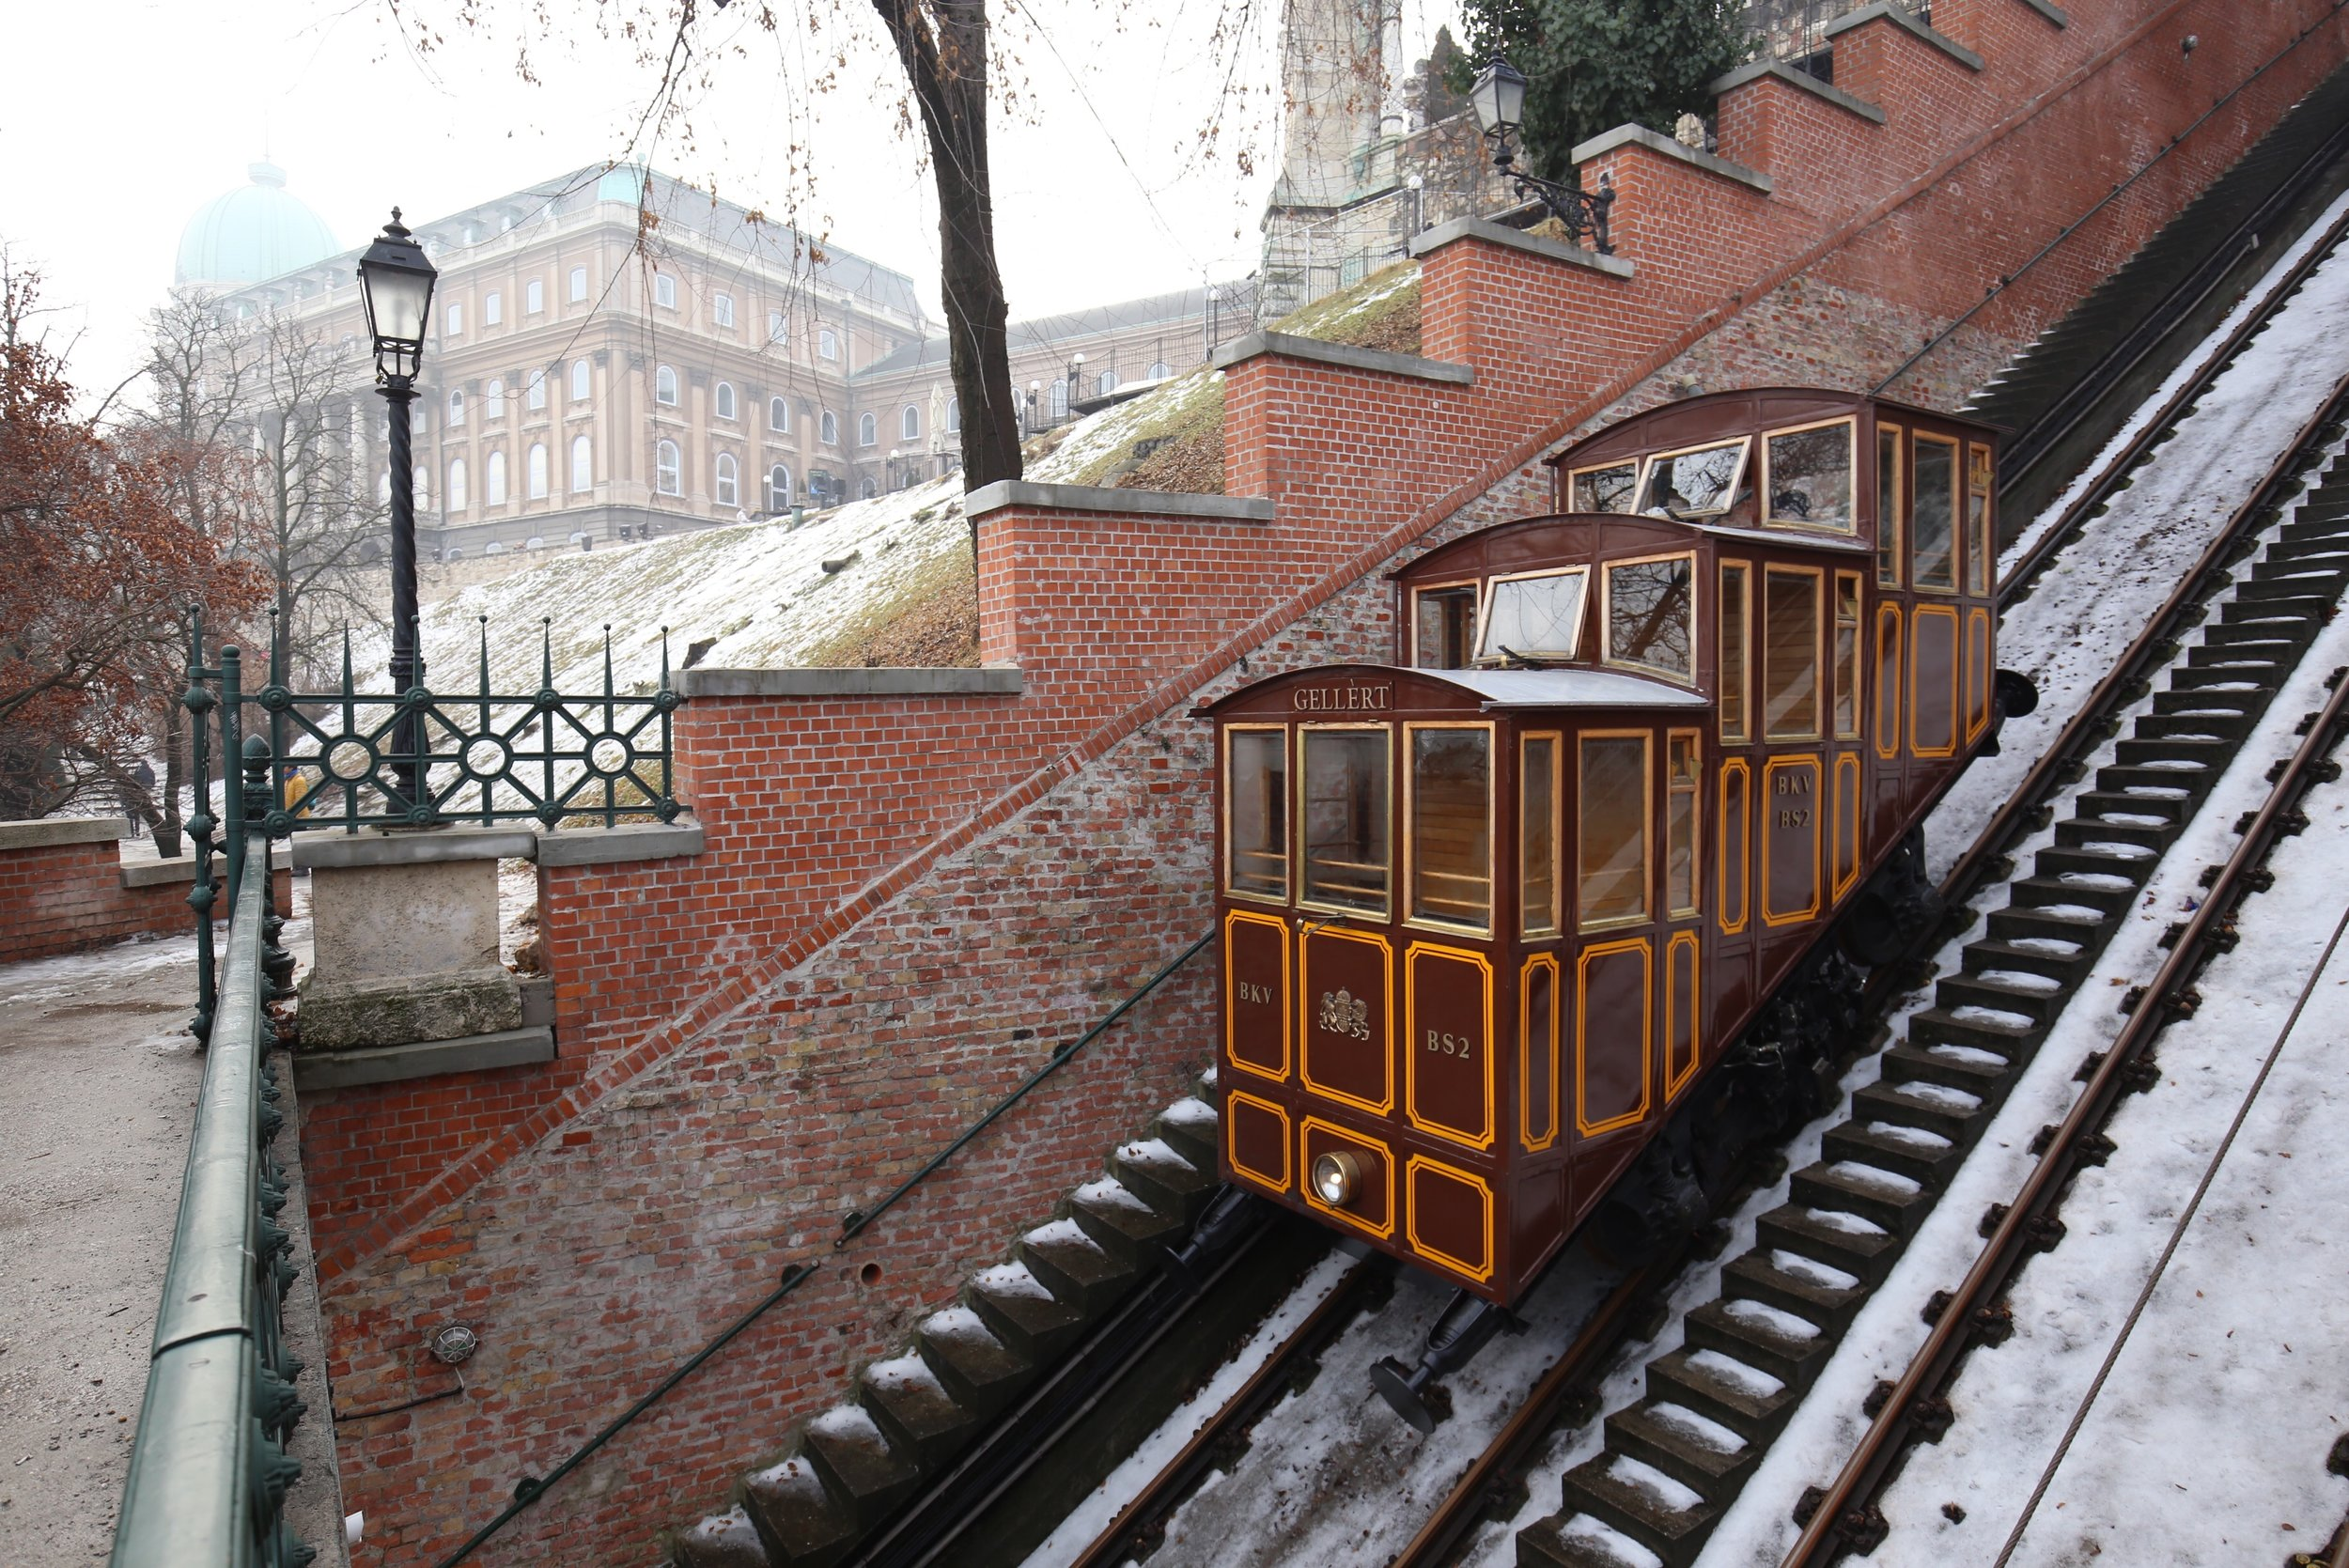 The real funicular from the Grand Budapest hotel - the old Gellert Funicular.